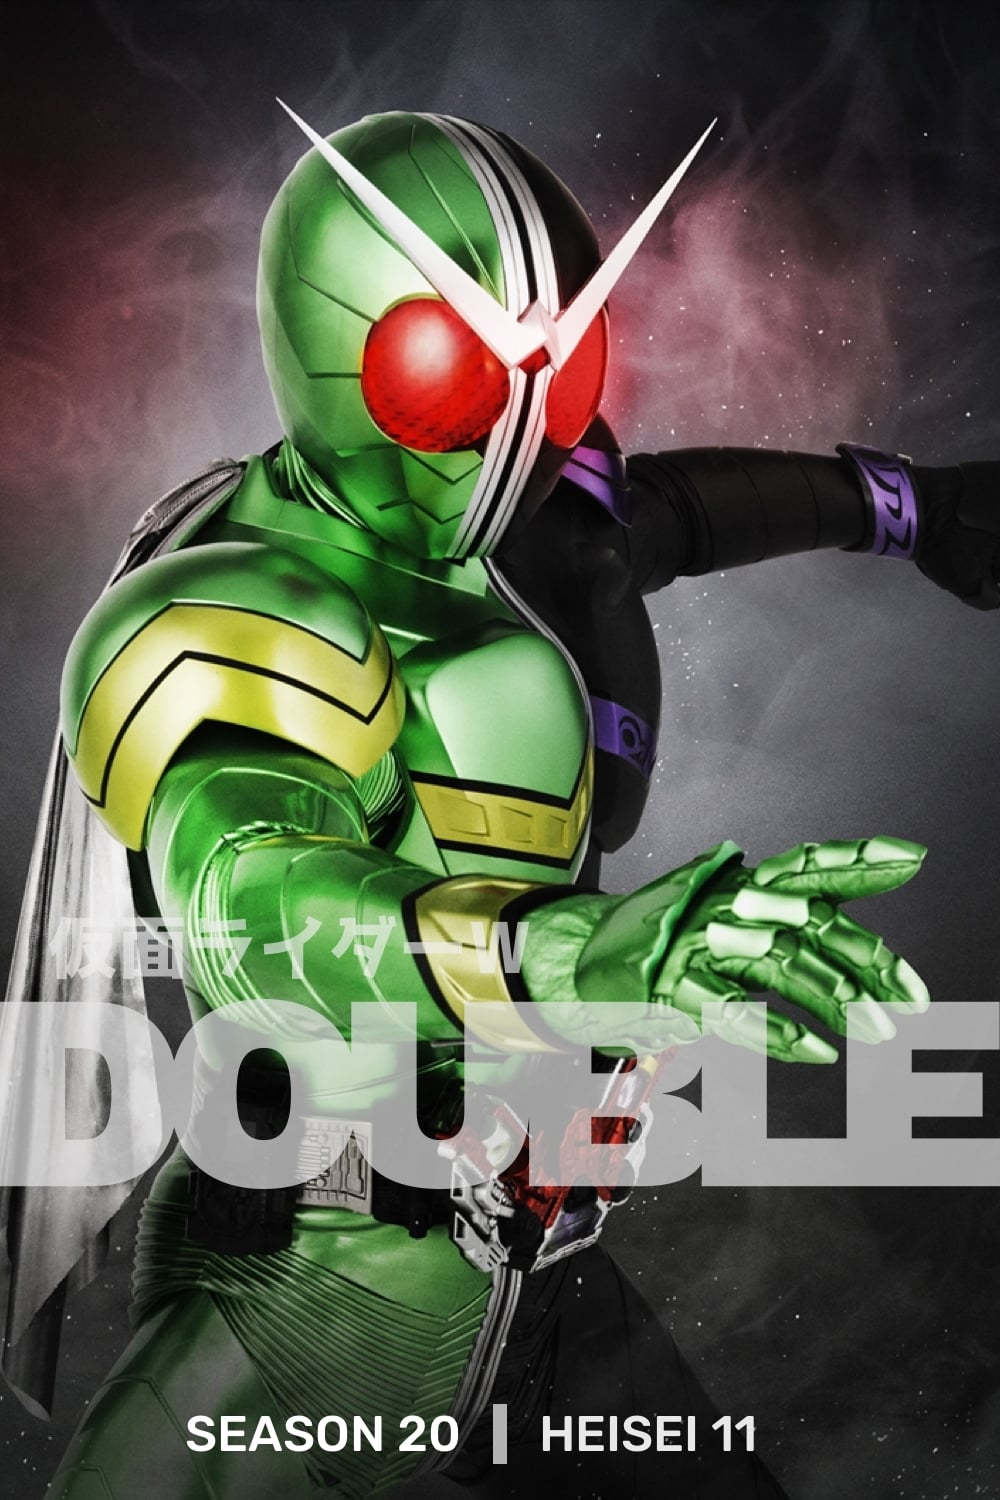 Kamen Rider - Season 21 Episode 1 : Medal, Underwear, Mysterious Arm Season 20